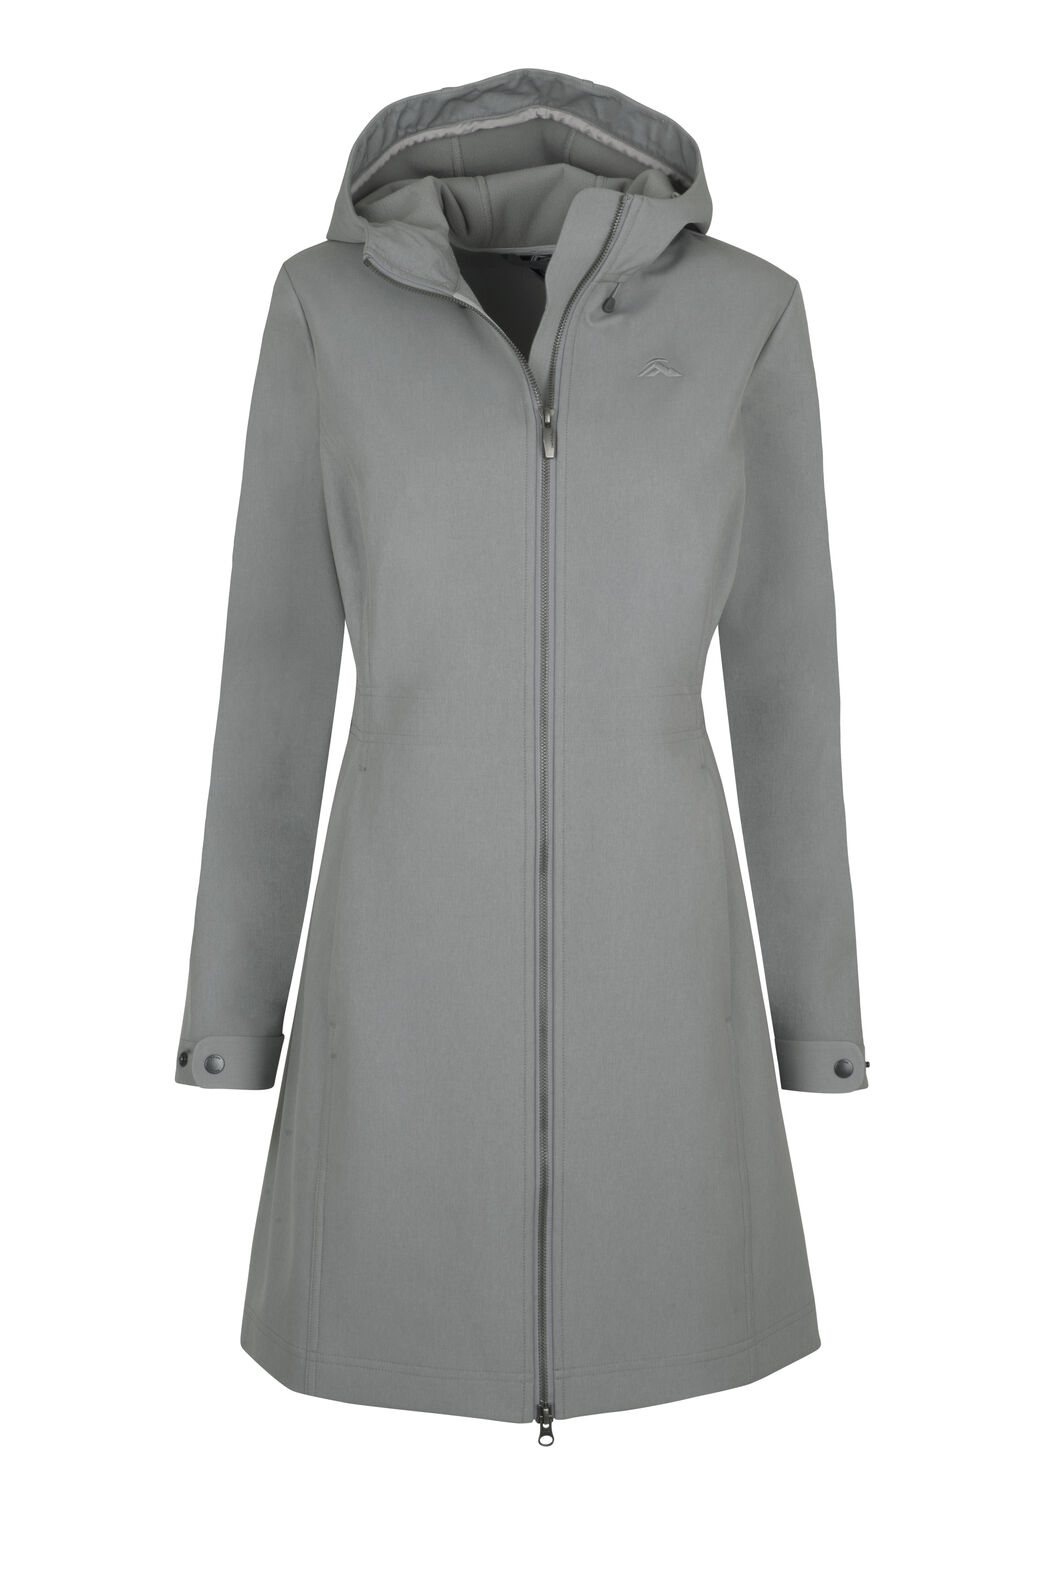 Chord Softshell Coat - Women's, Monument, hi-res